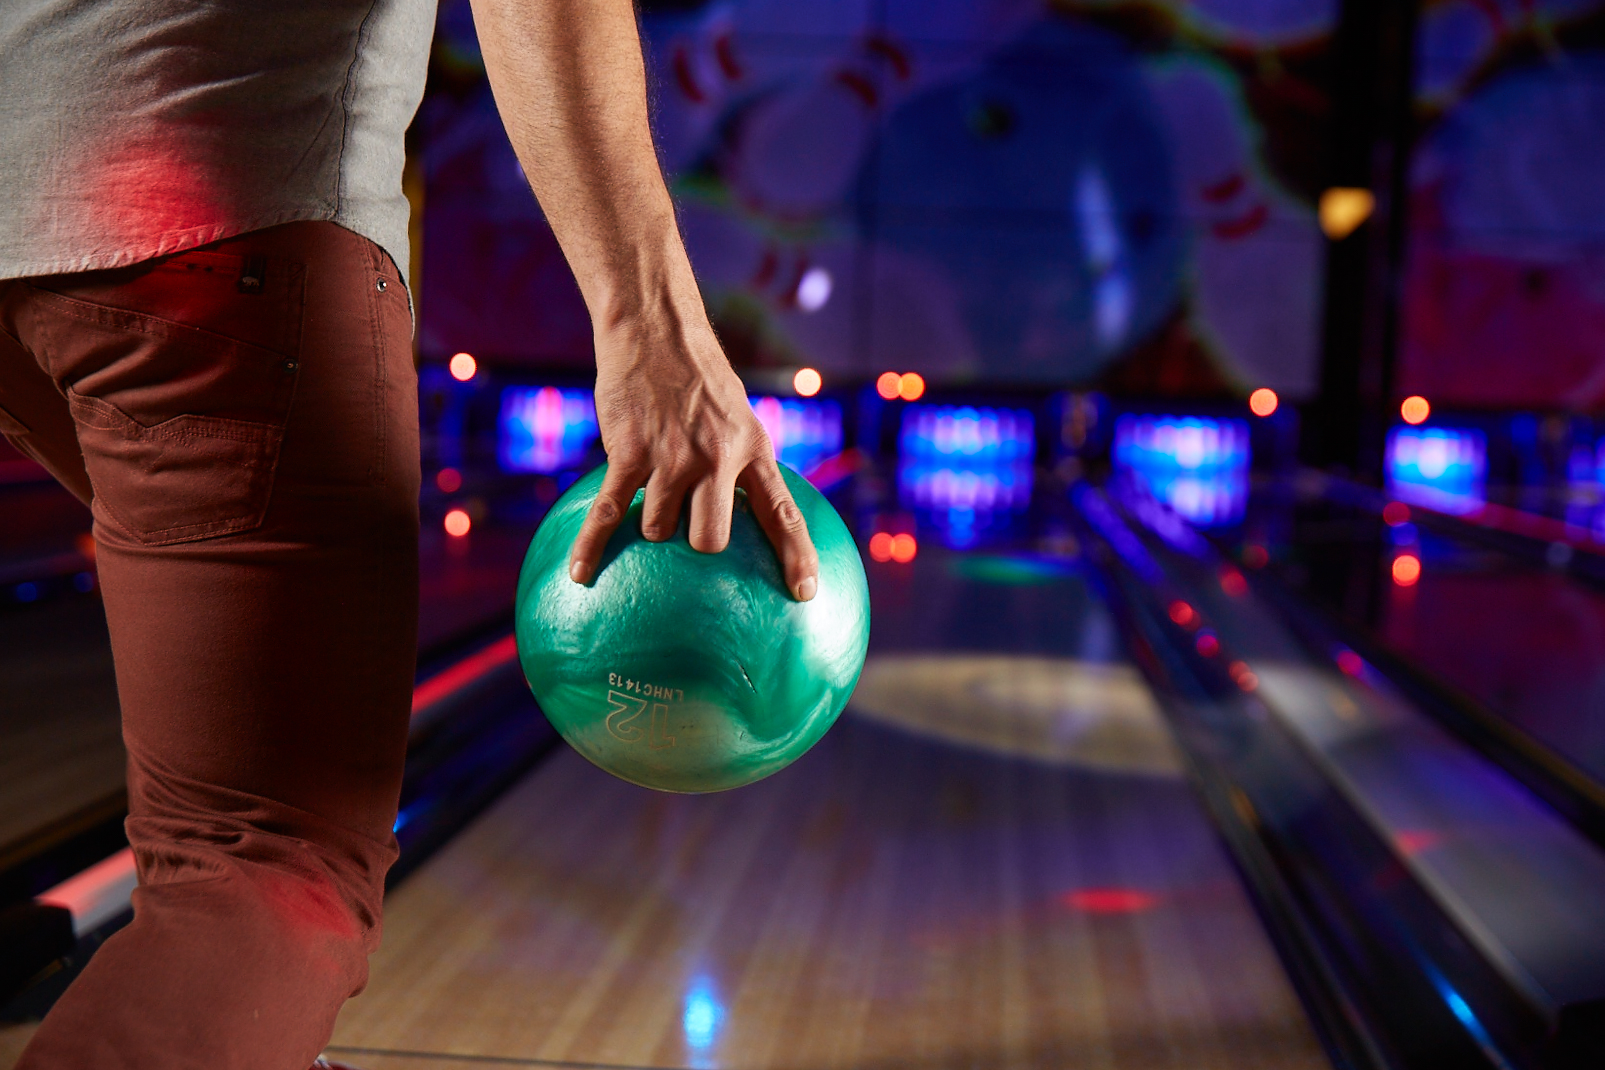 Alley cats bowling coupons